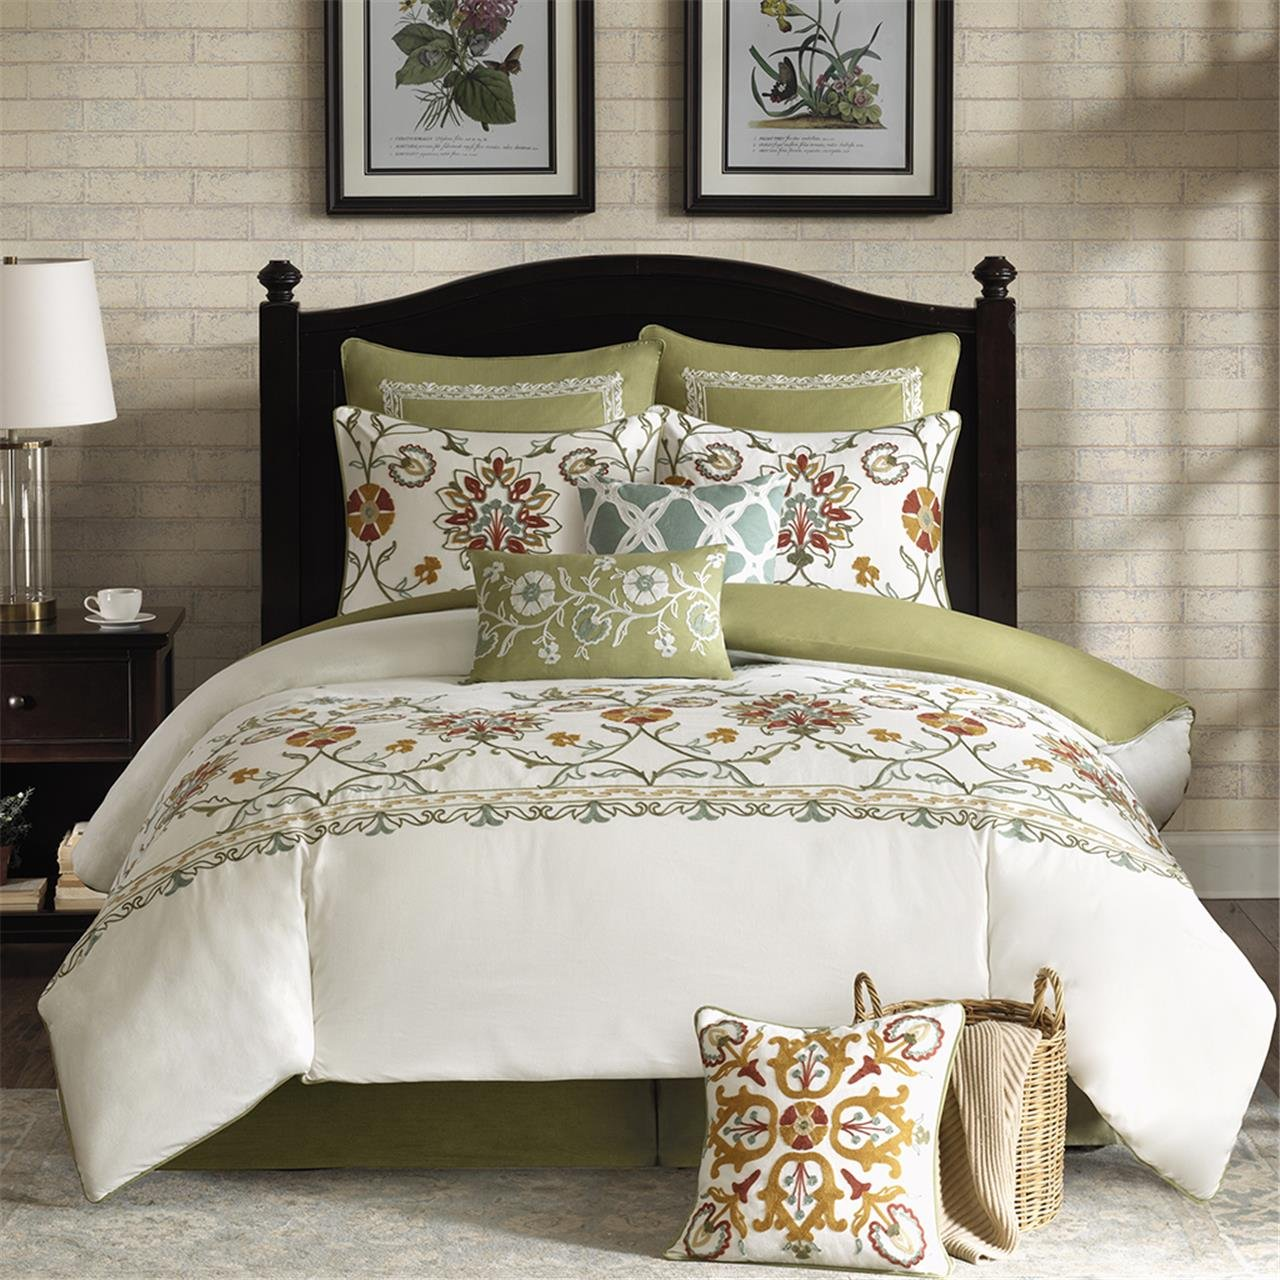 Harbor House Arabesque Comforter Set, Queen, Ivory